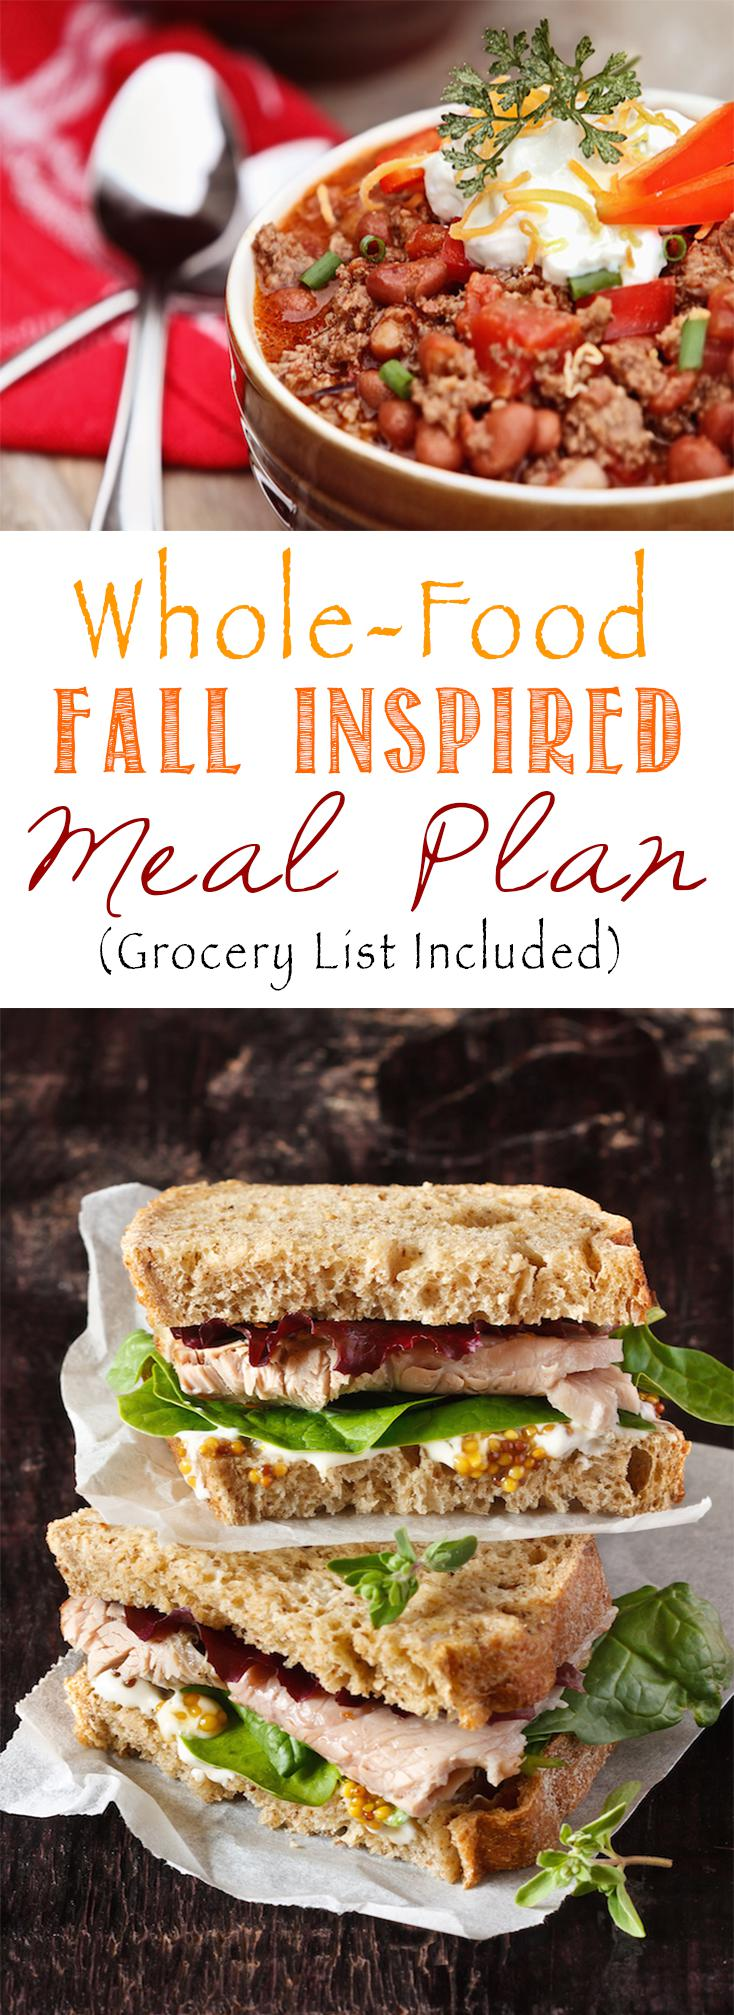 Everything you need to make 5 healthy whole-food meals. Menu, recipes, and grocery list included!